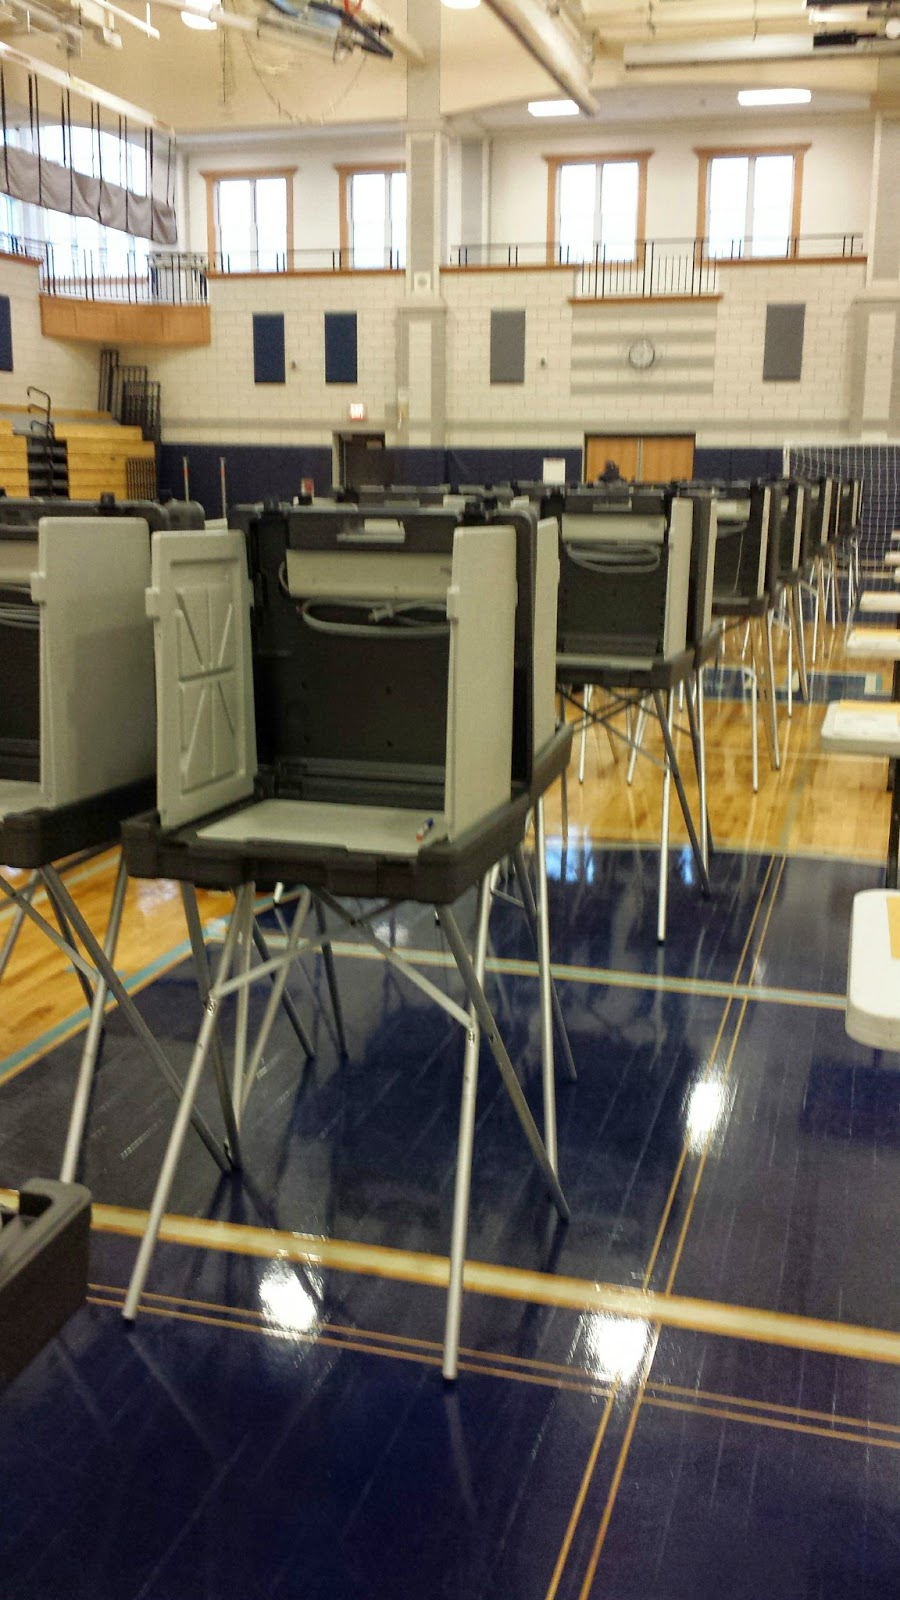 only a few voting booths were set up for each precinct anticipating a low turnout